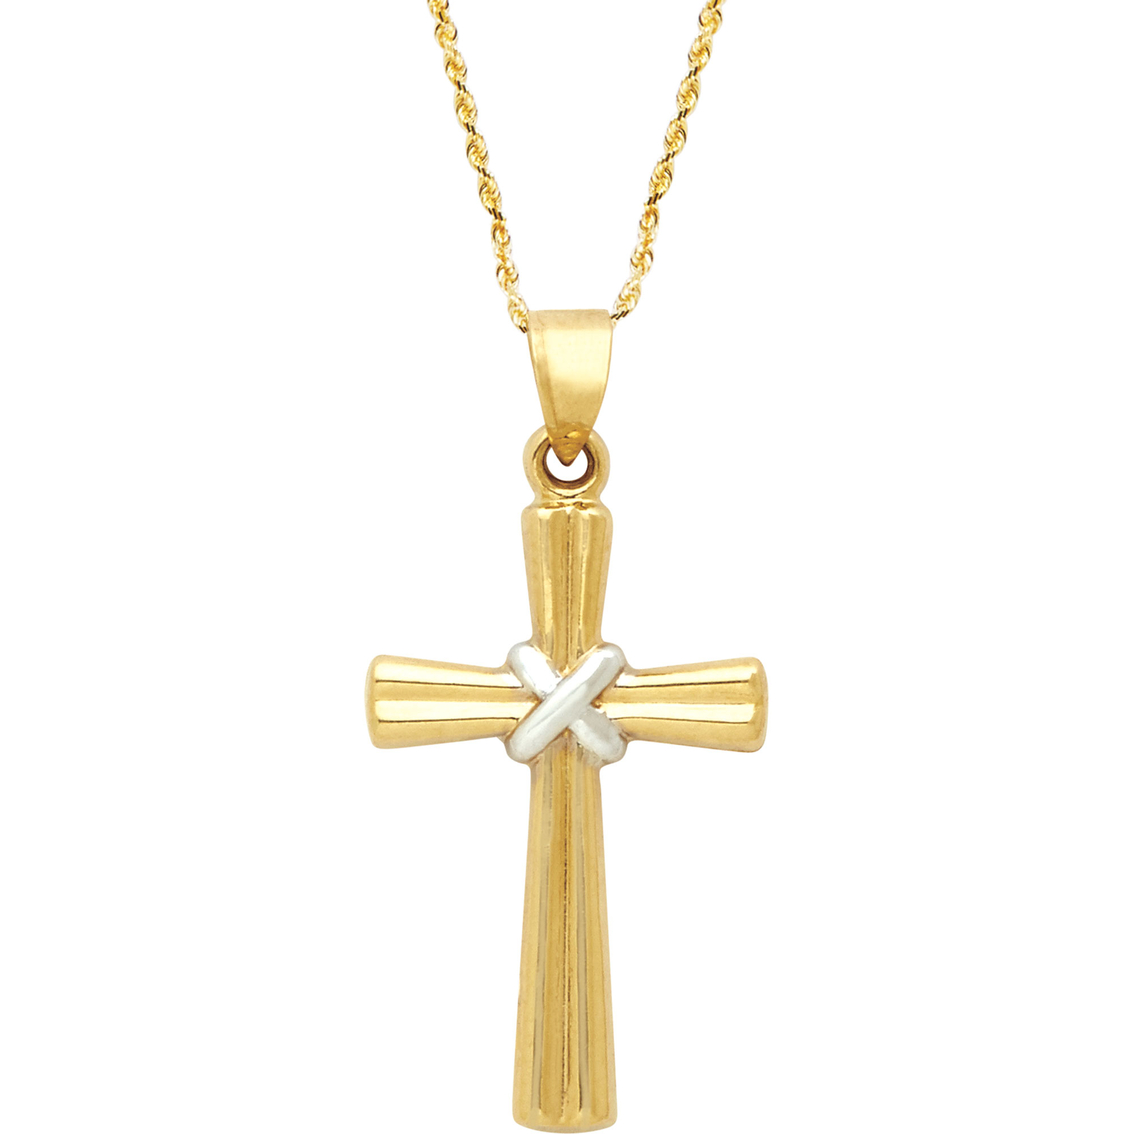 14k yellow gold two toned ribbed cross pendant with solid